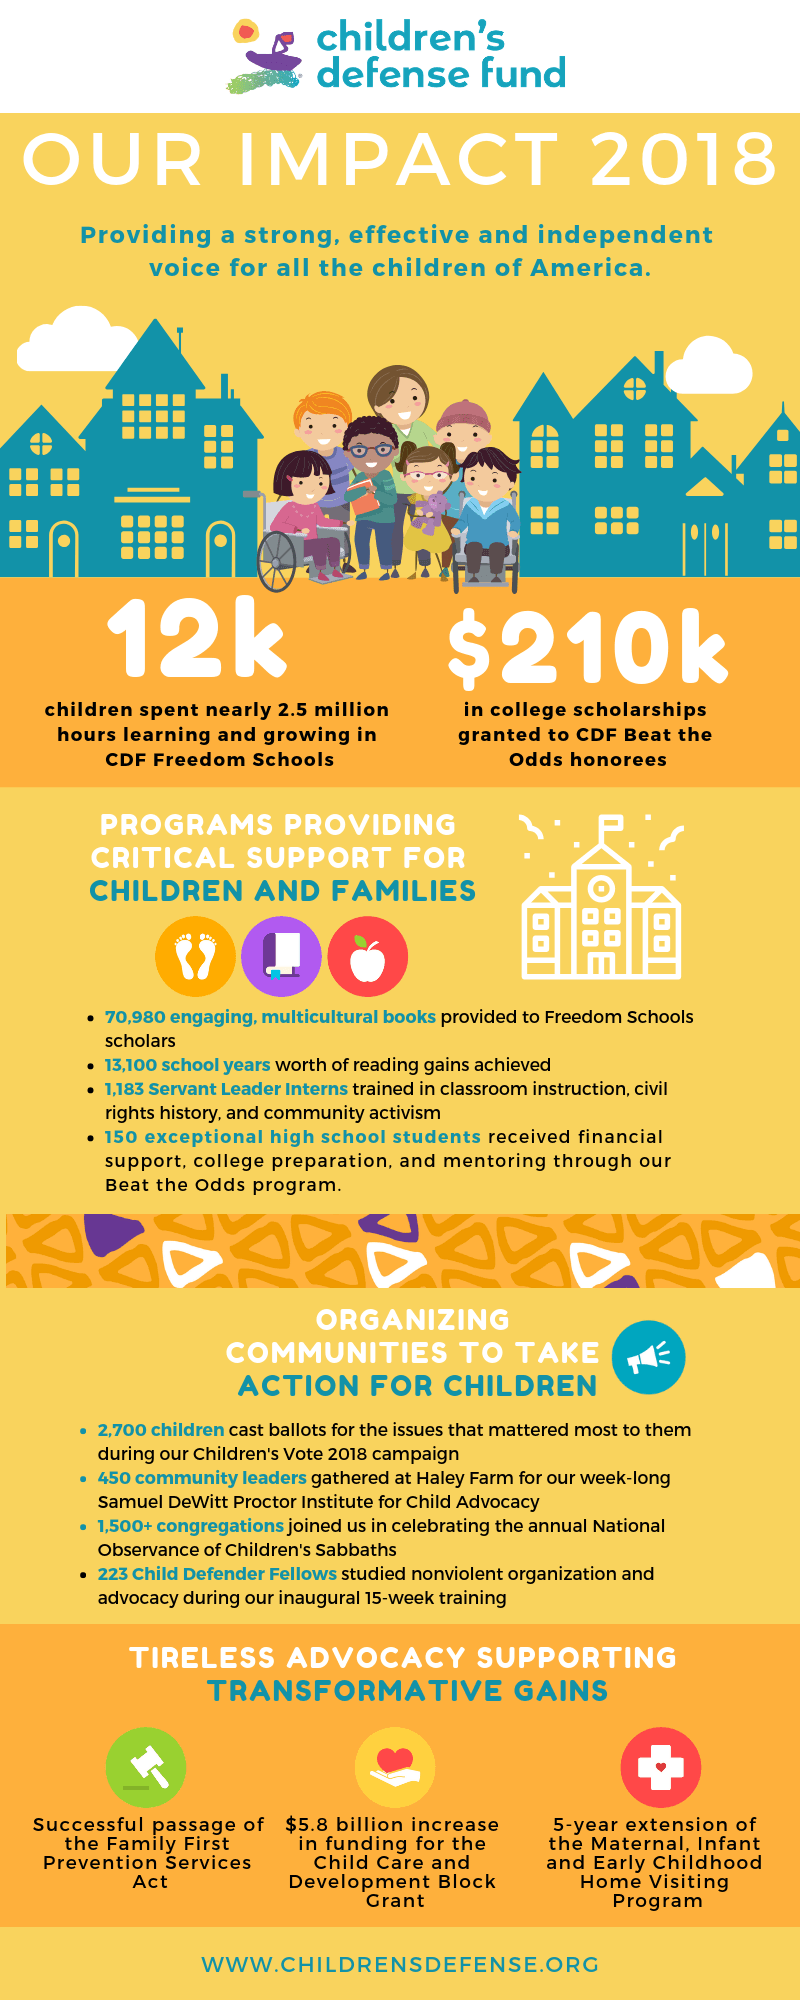 Our Impact 2018: Providing a strong, effective and independent voice for all the children of America.